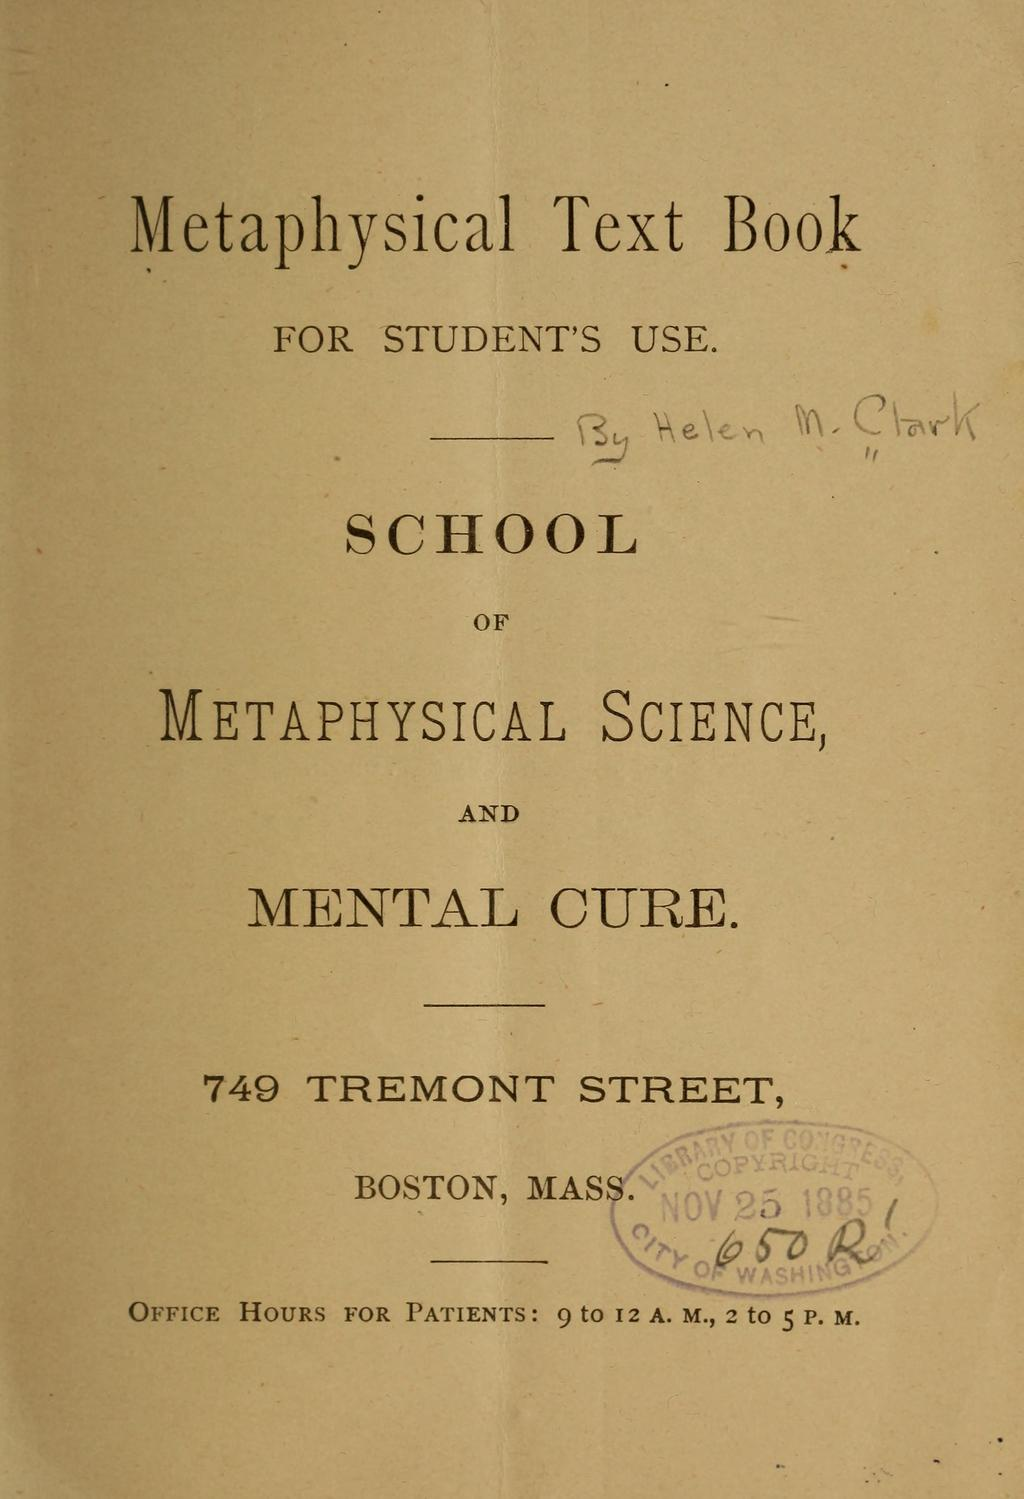 Metaphysical Text Book FOR STUDENT'S USE. SCHOOL OF Metaphysical Science, AND MENTAL CURE.